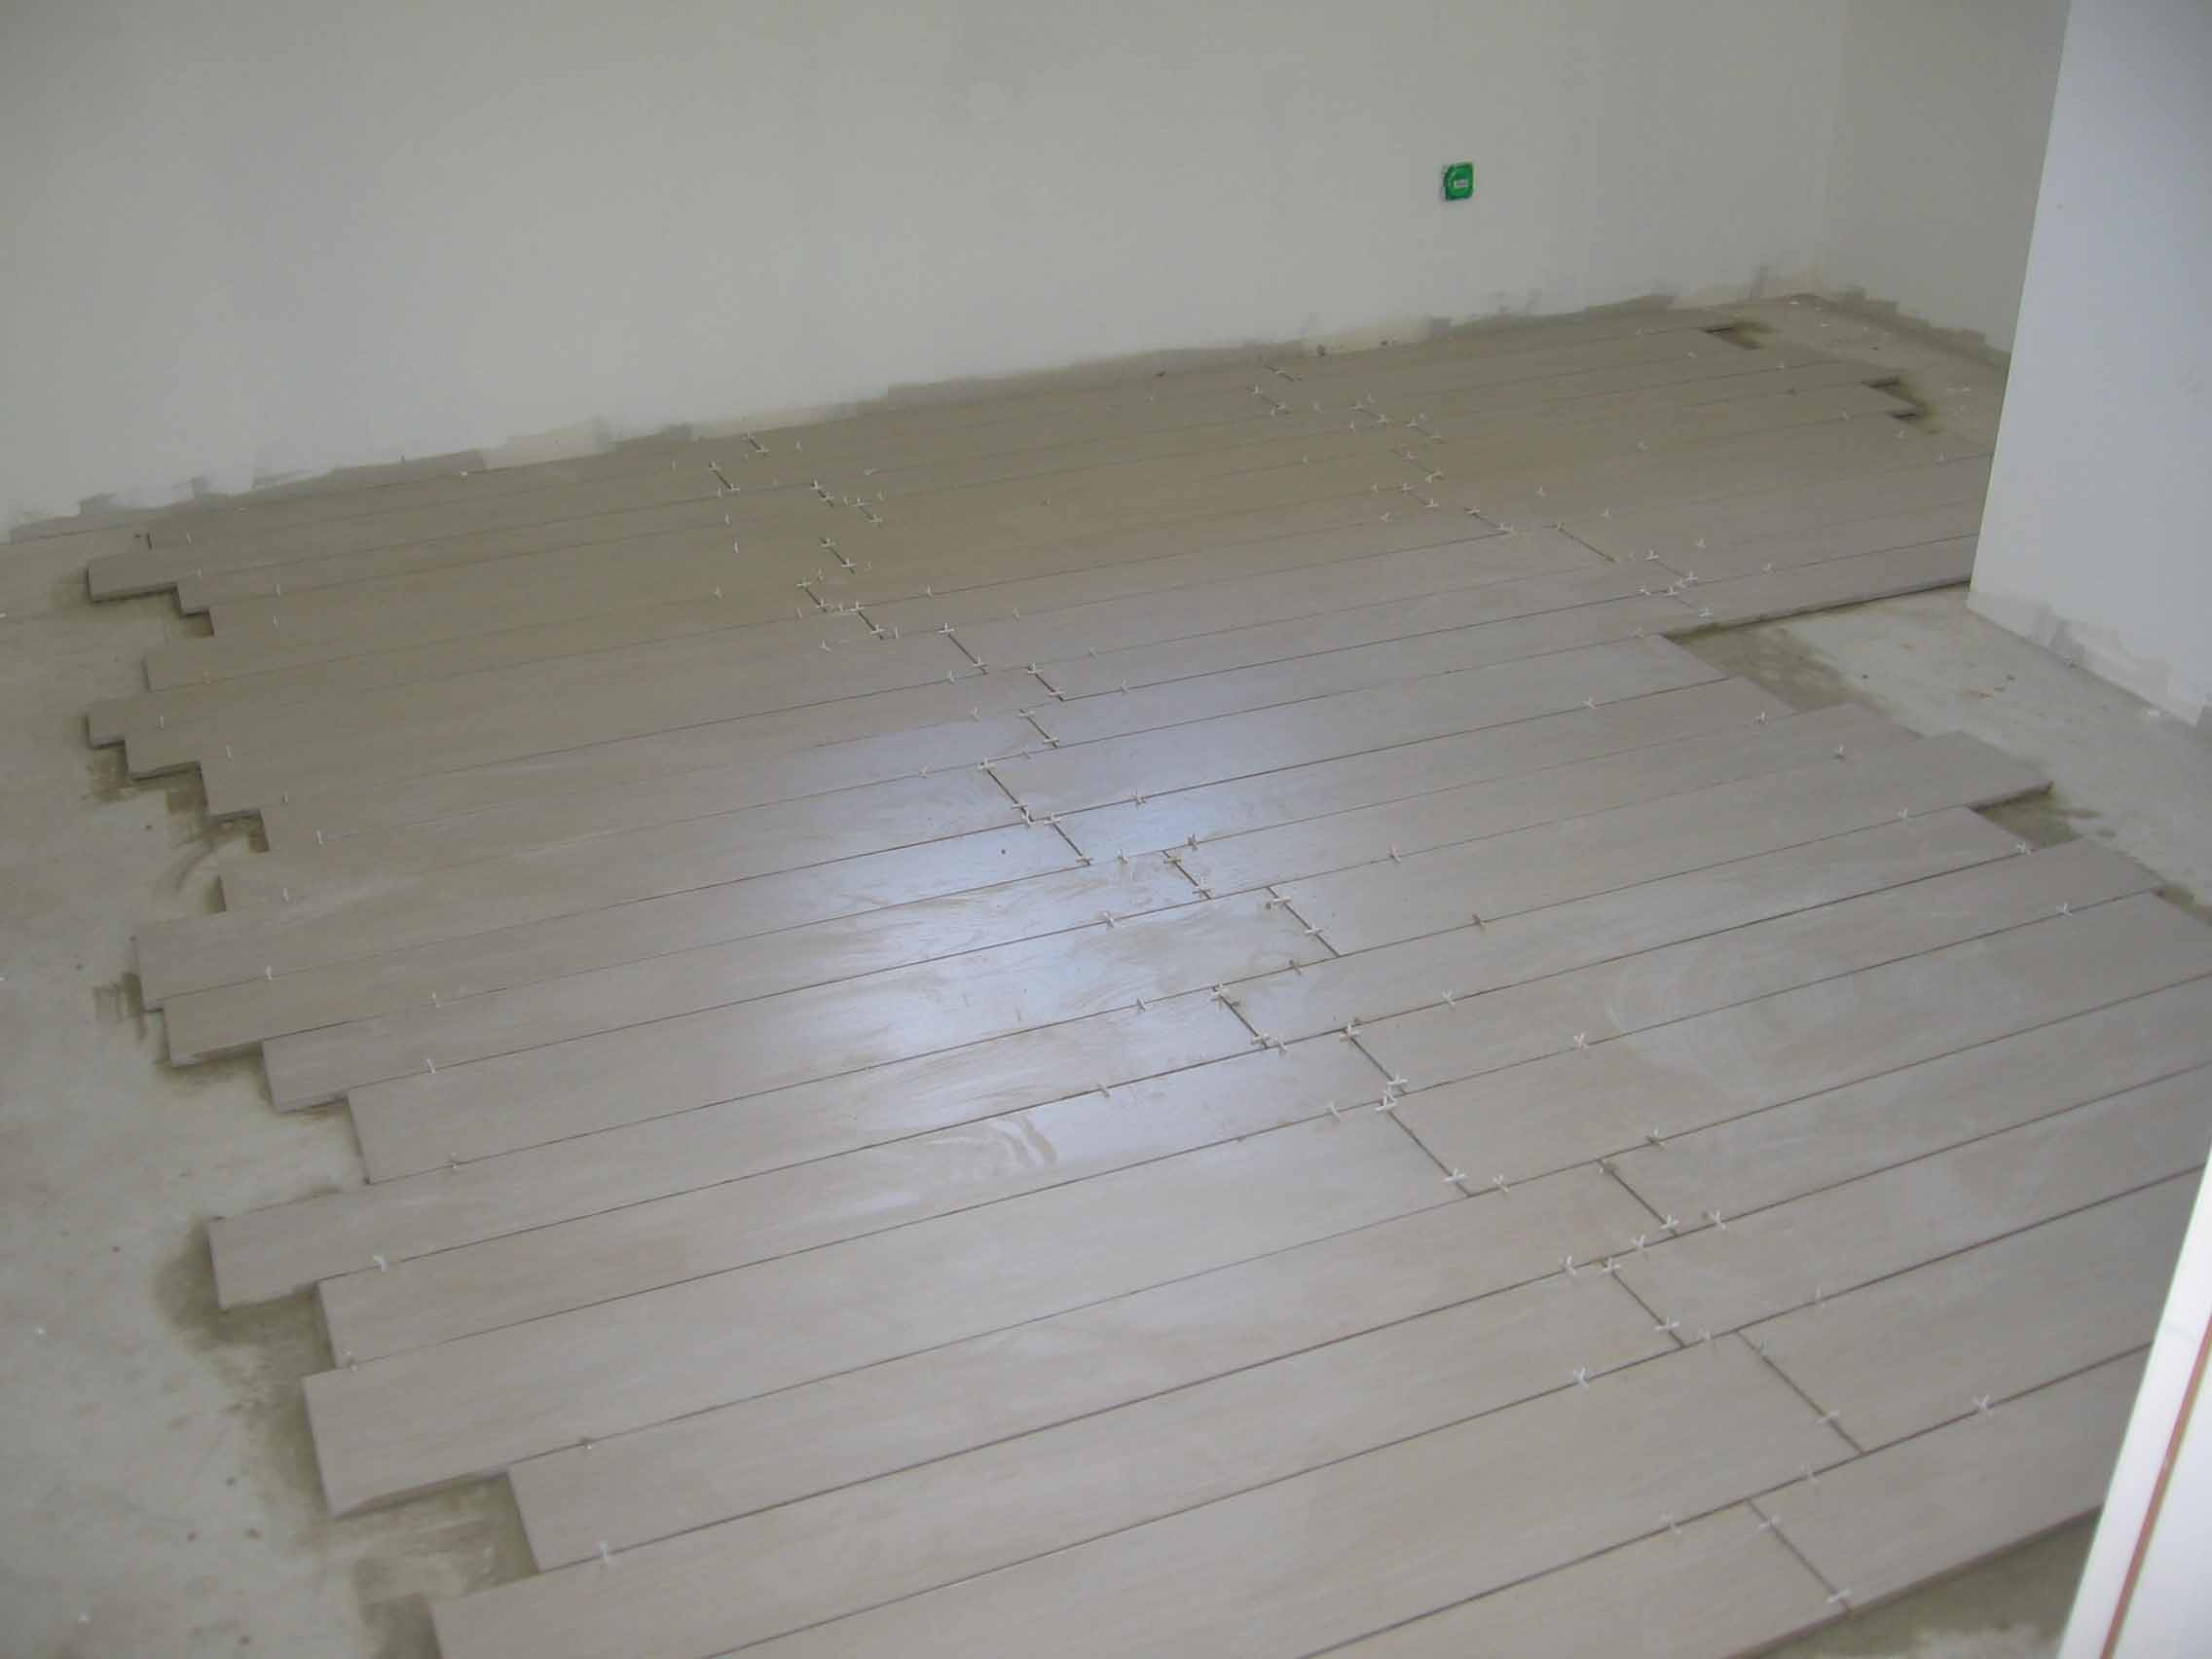 Carrelage Imitation Parquet | La Construction De Fortitou ... avec Pose Carrelage Imitation Parquet Joint Perdu